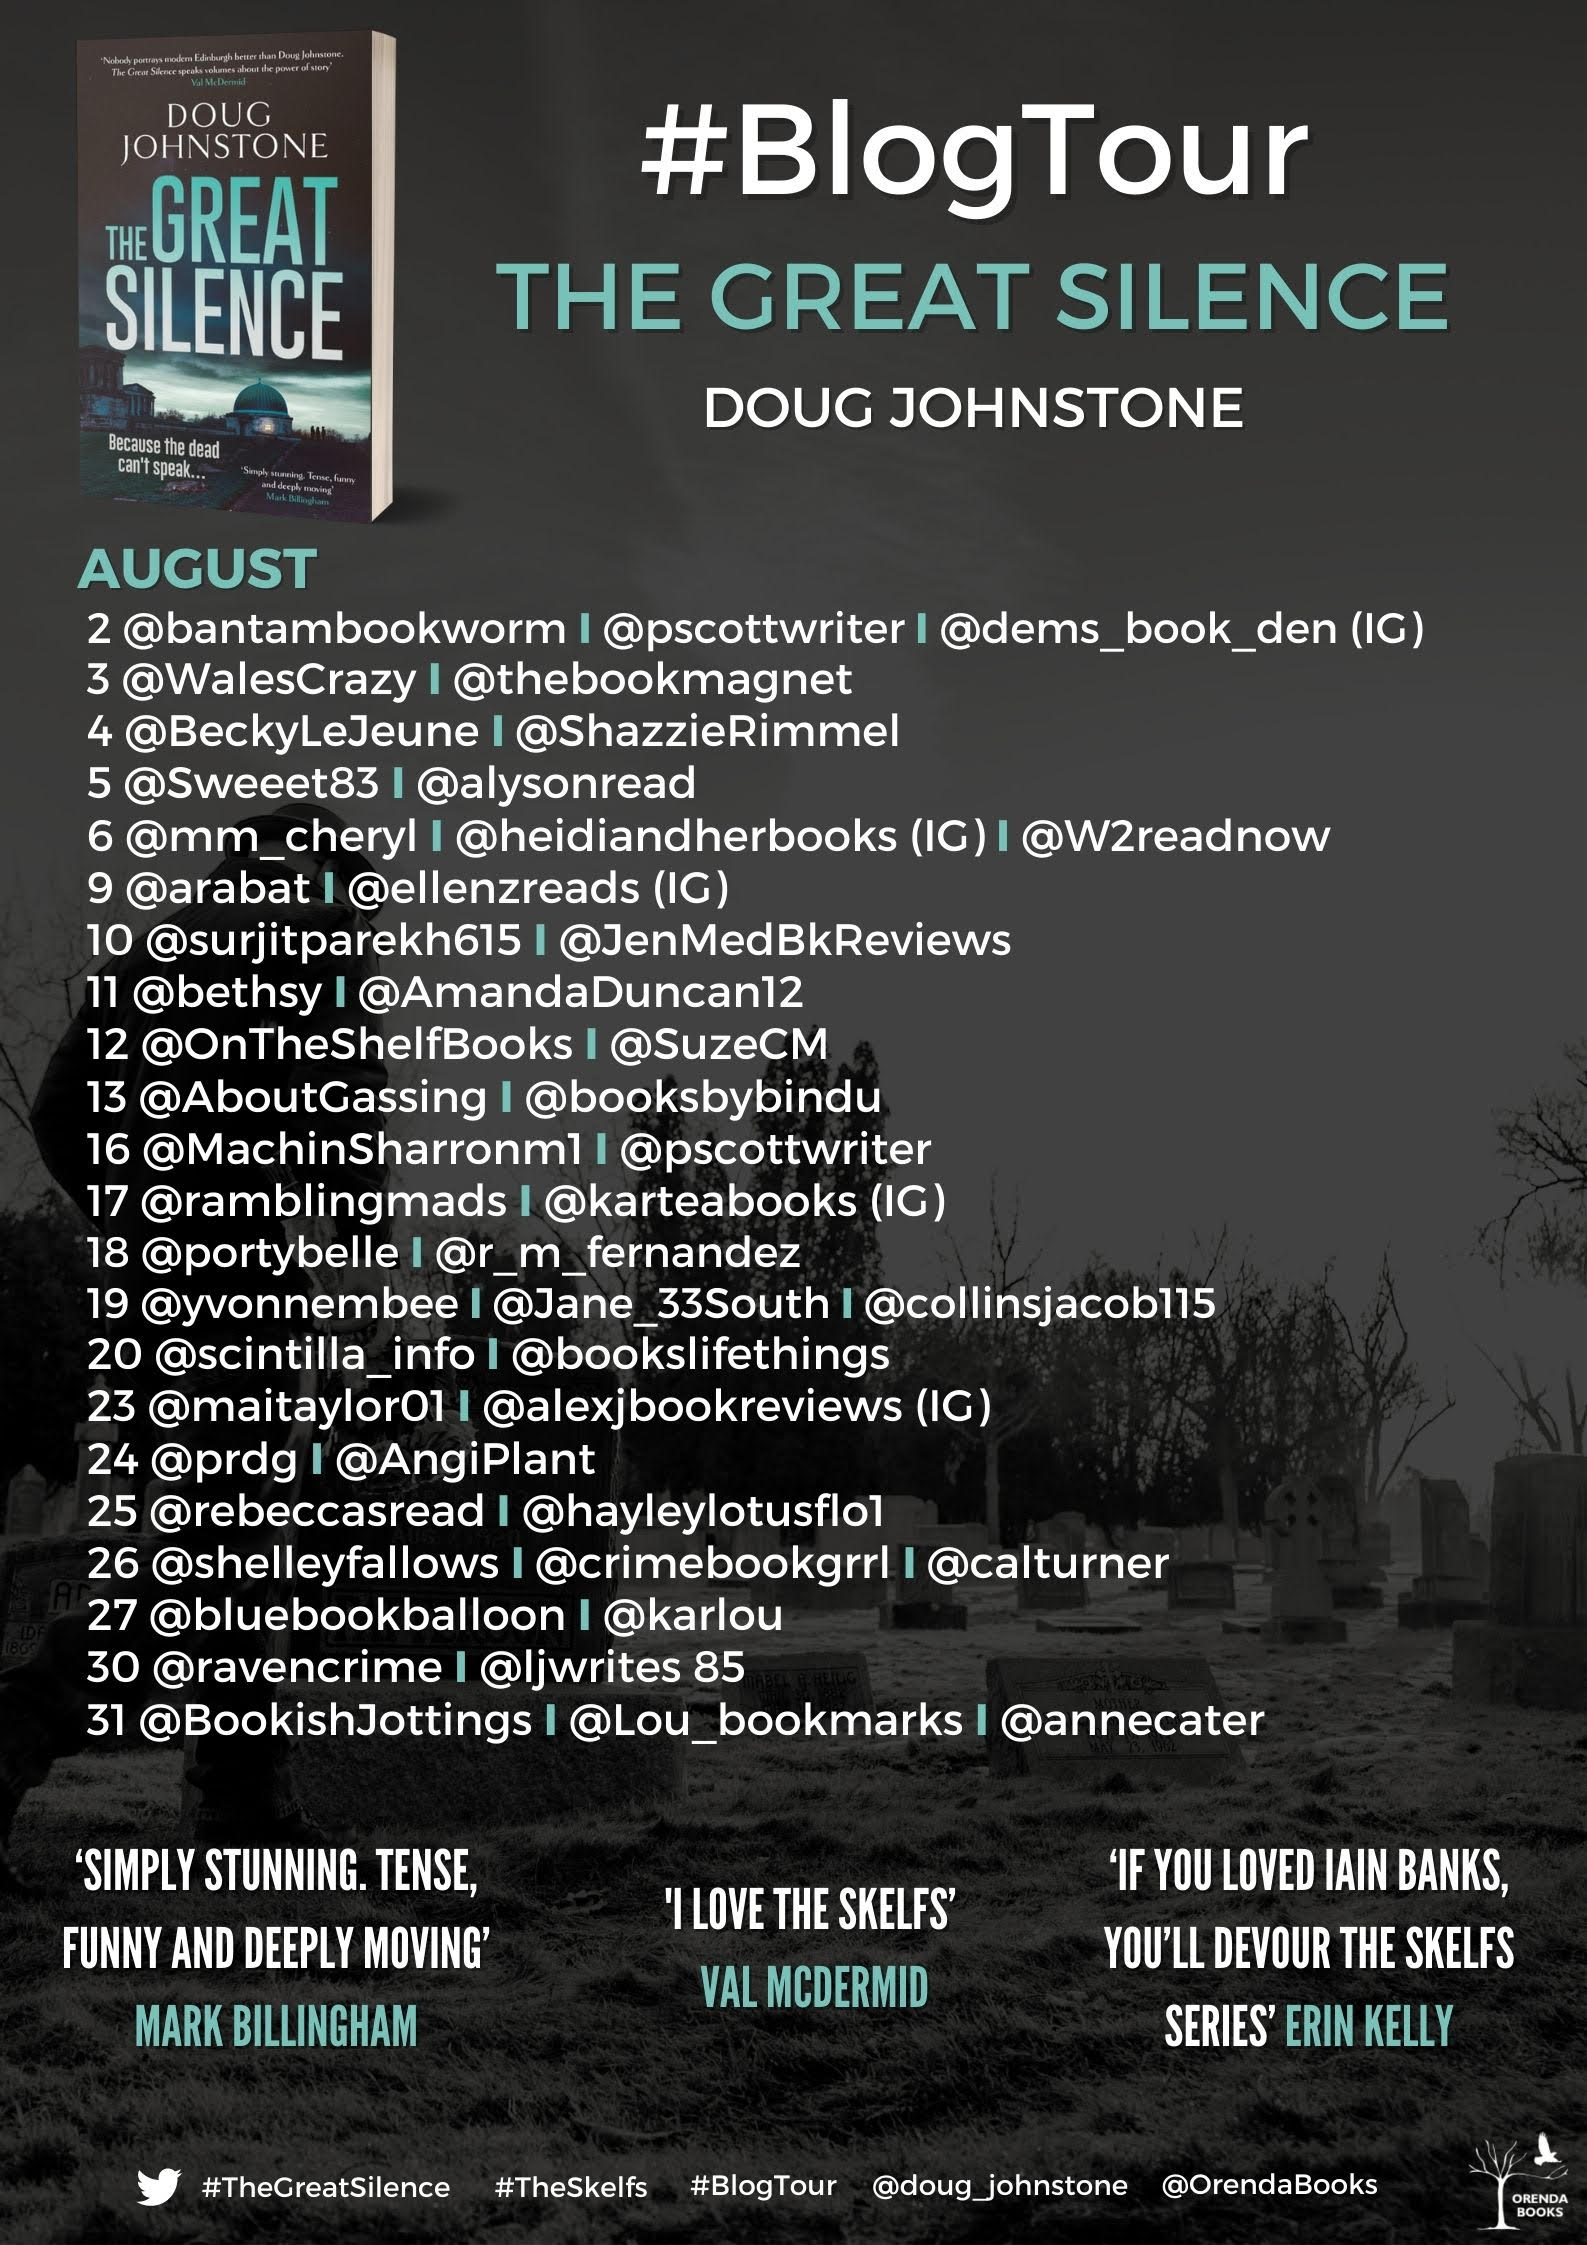 Blog Tour for The Great Silence